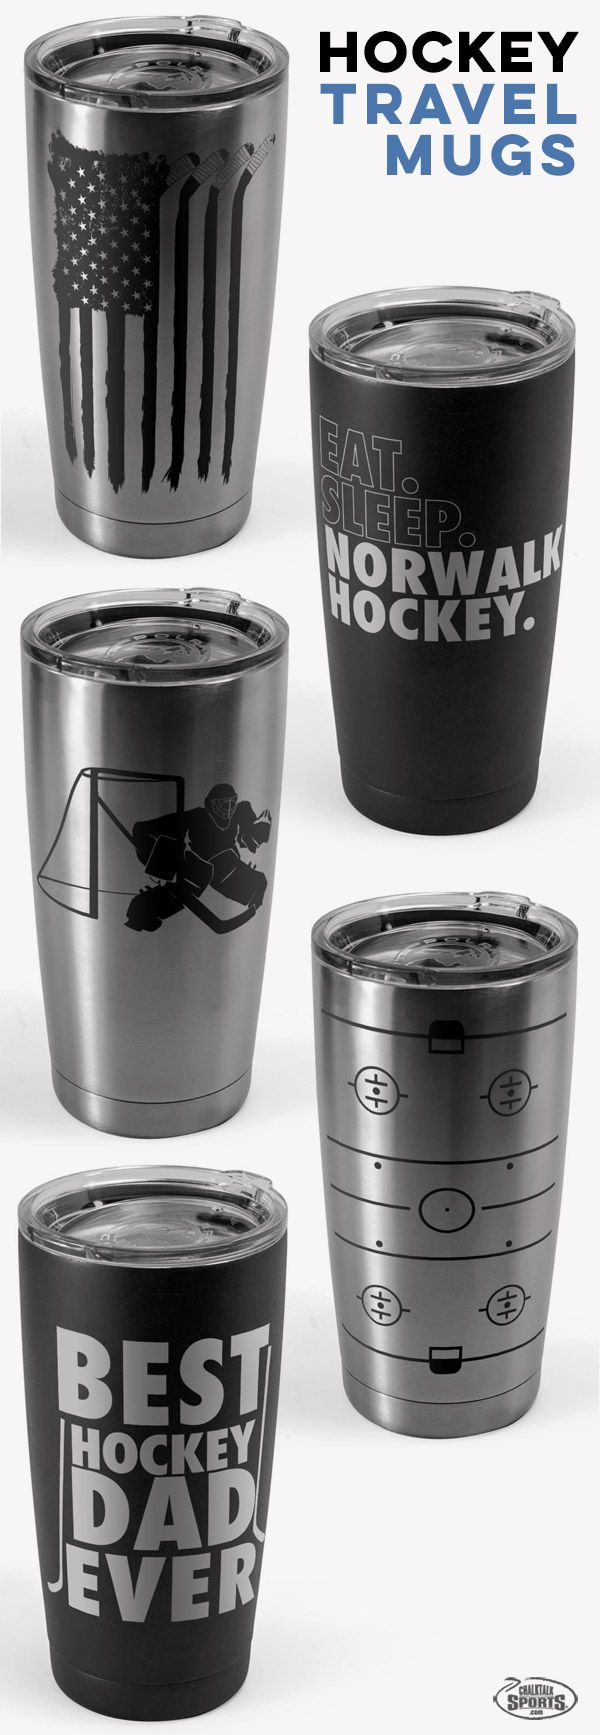 Our engraved hockey travel mugs have original designs, and many can be personalized for a unique hockey gift that includes a player name and number, team name, or other text - and all are designed and insulated for both hot and cold drinks.